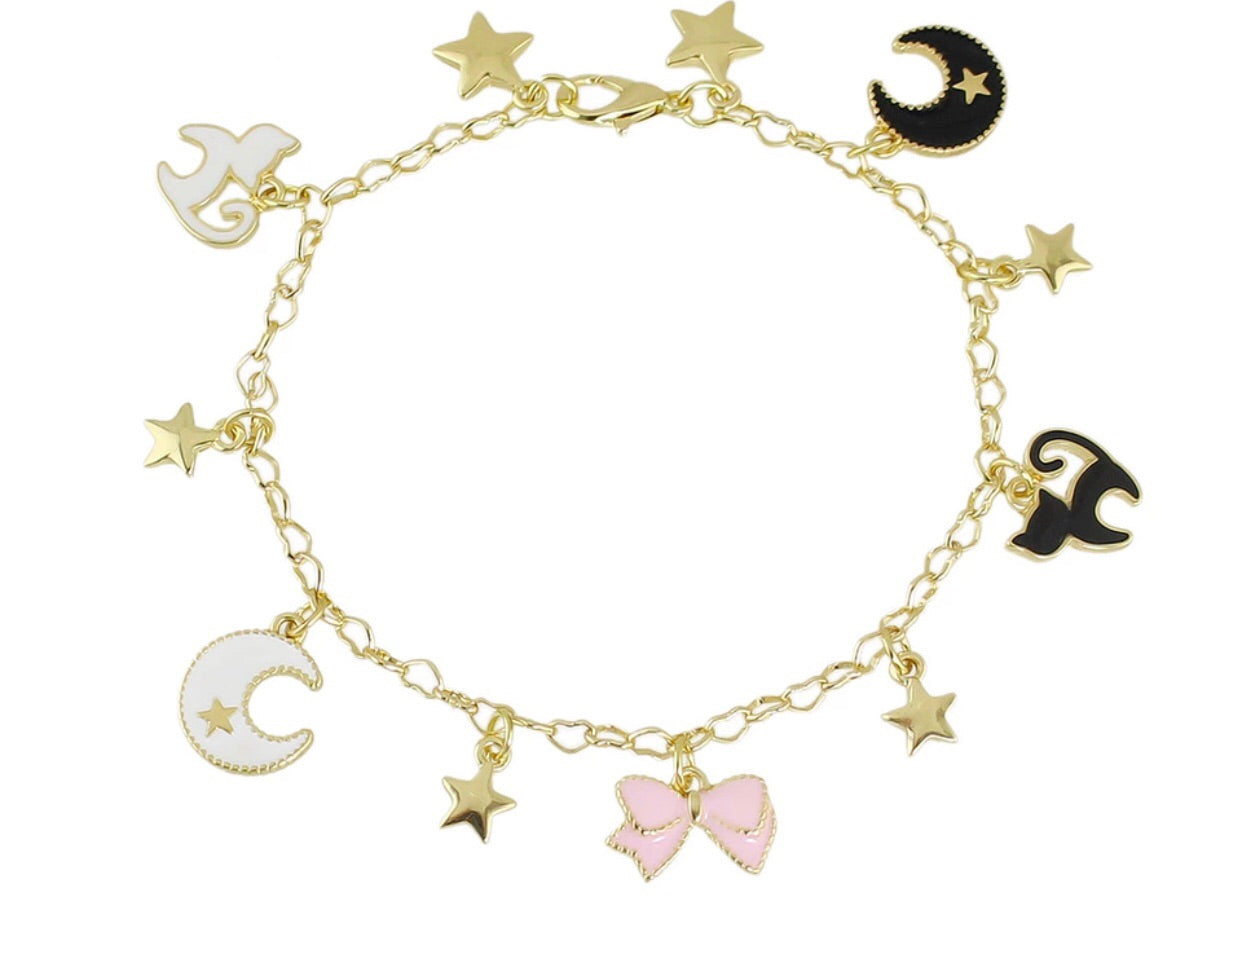 Charm bracelet with cats, stars, and bows